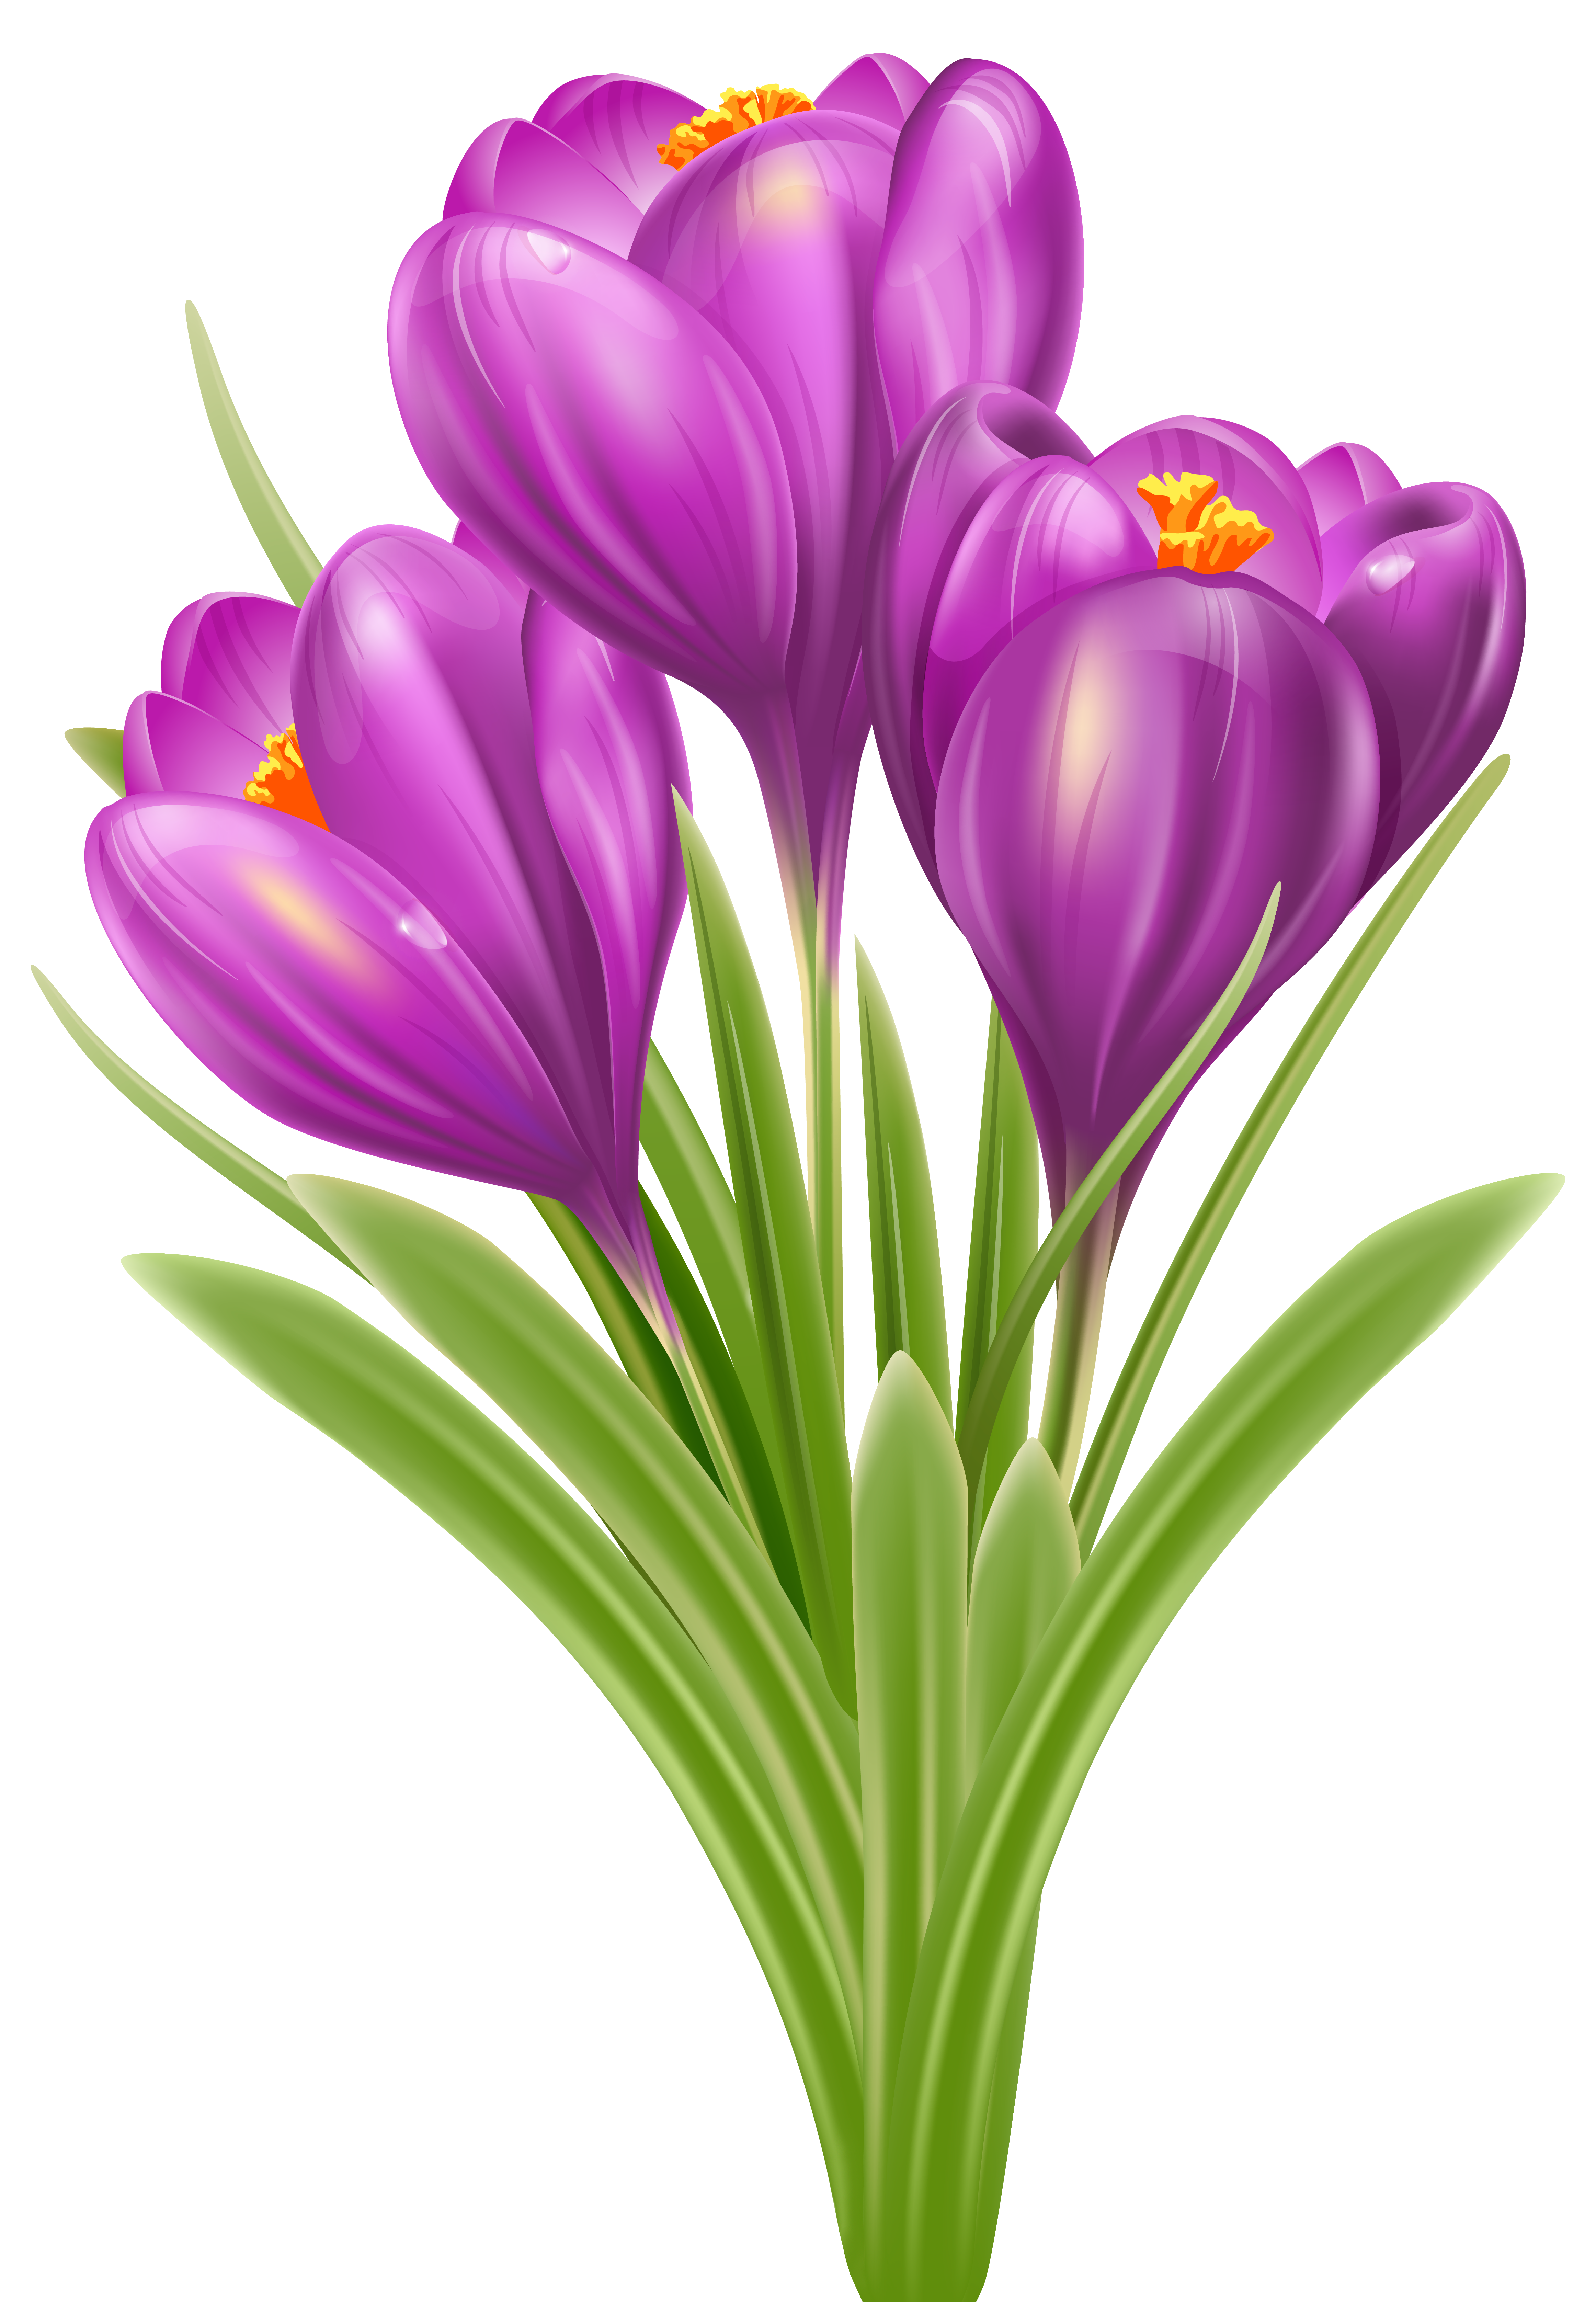 Crocus flower clipart clip royalty free download Spring Crocus PNG Image | Gallery Yopriceville - High-Quality ... clip royalty free download